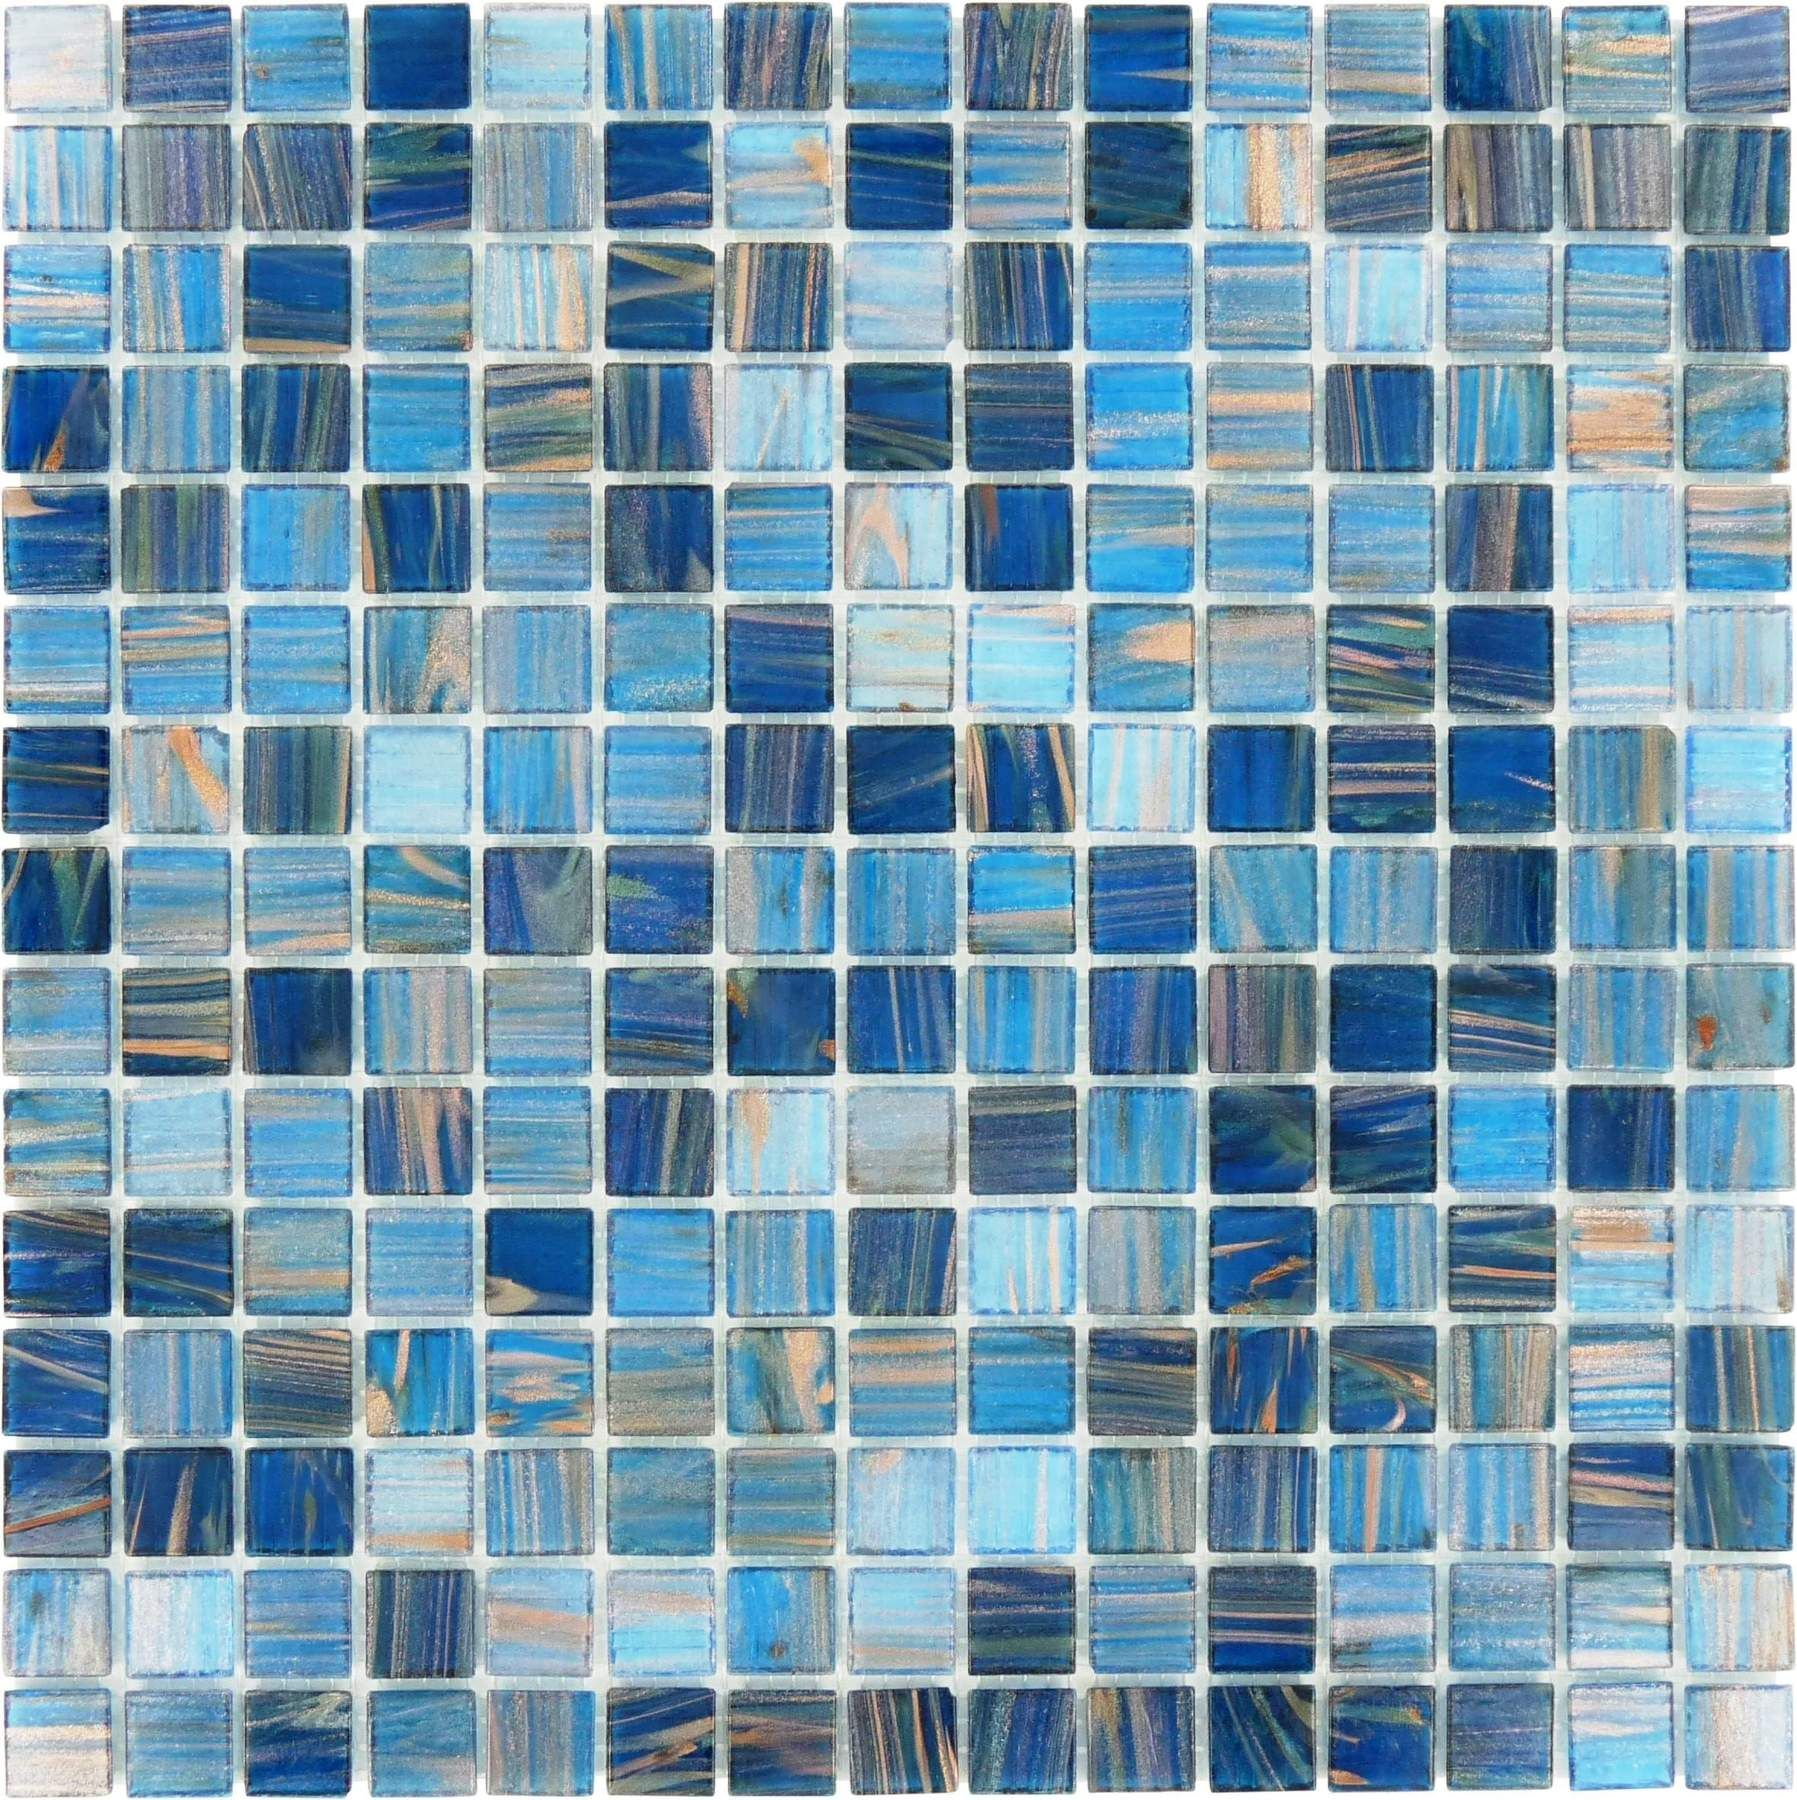 3//4 x 3//4 Glass Glossy Mosaic in Blue Iridescent